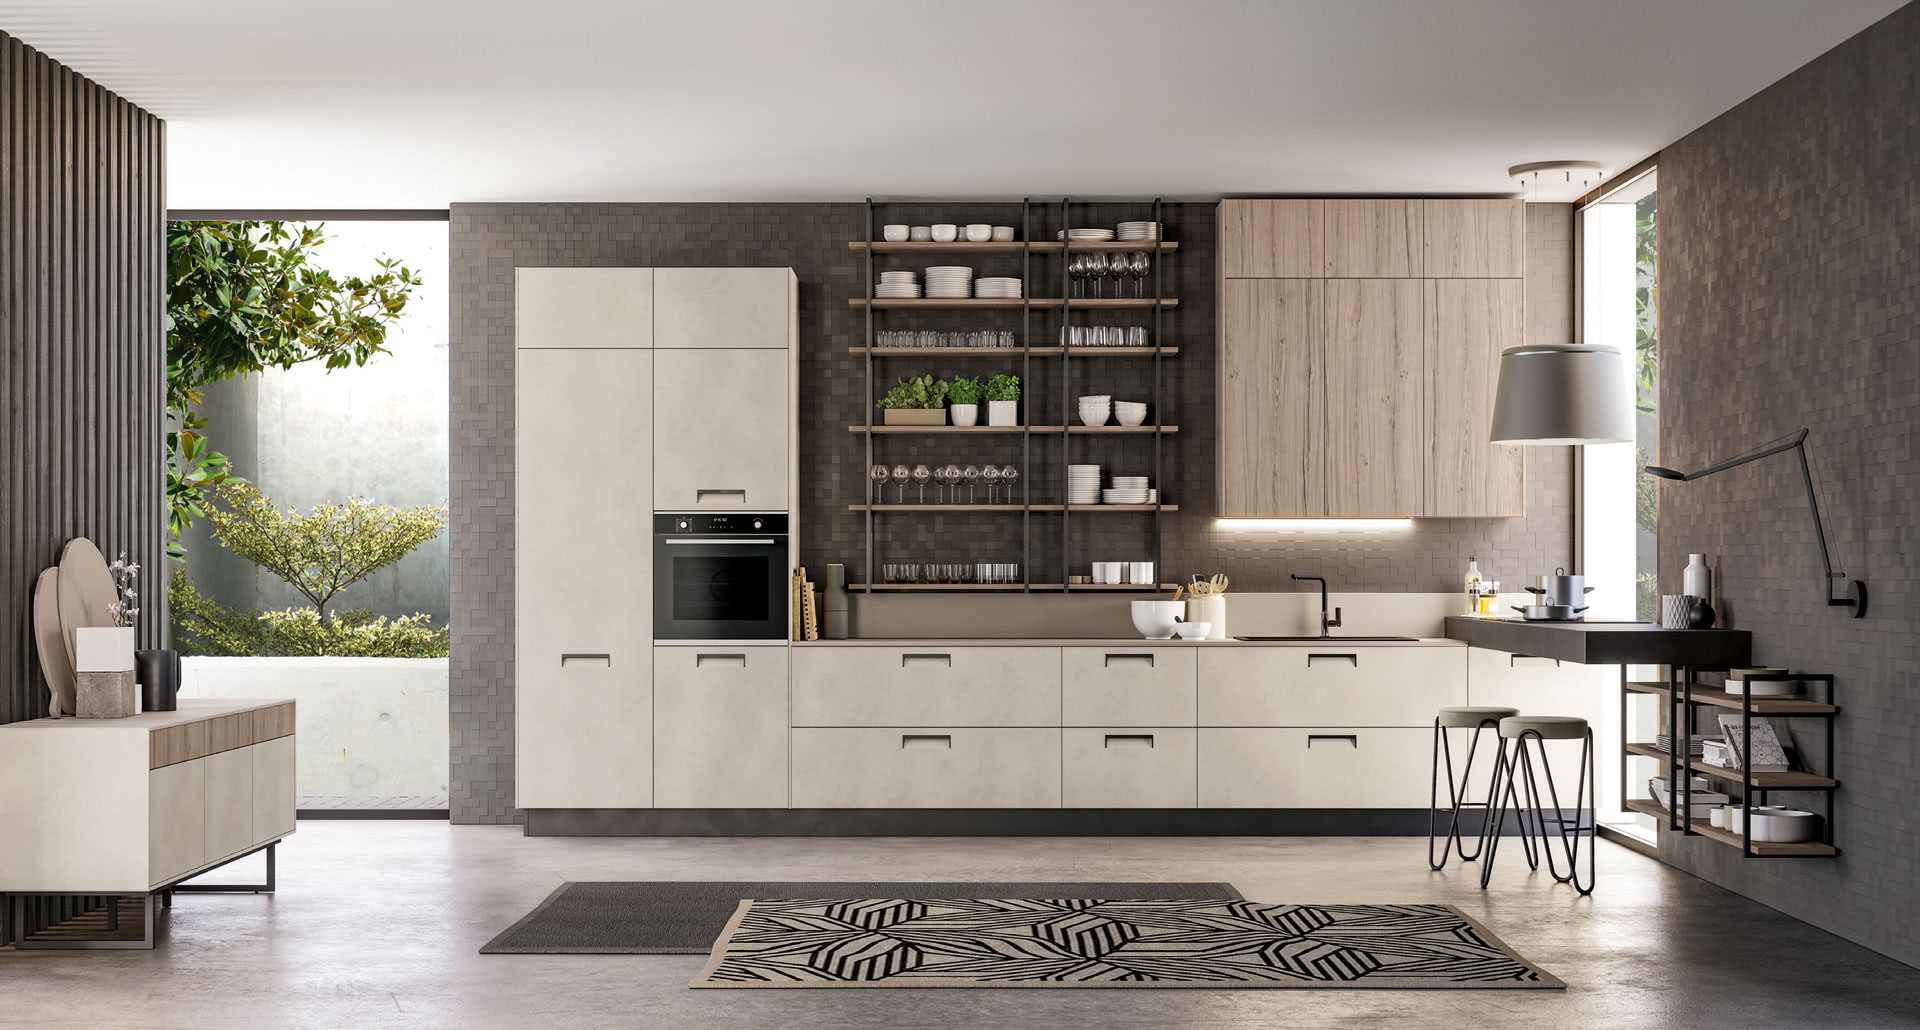 Round - With the new line of modern kitchens Round, LUBE embraces the green philosophy, which materializes in the doors made of PET, a totally renewable and recyclable material. - Cucine LUBE